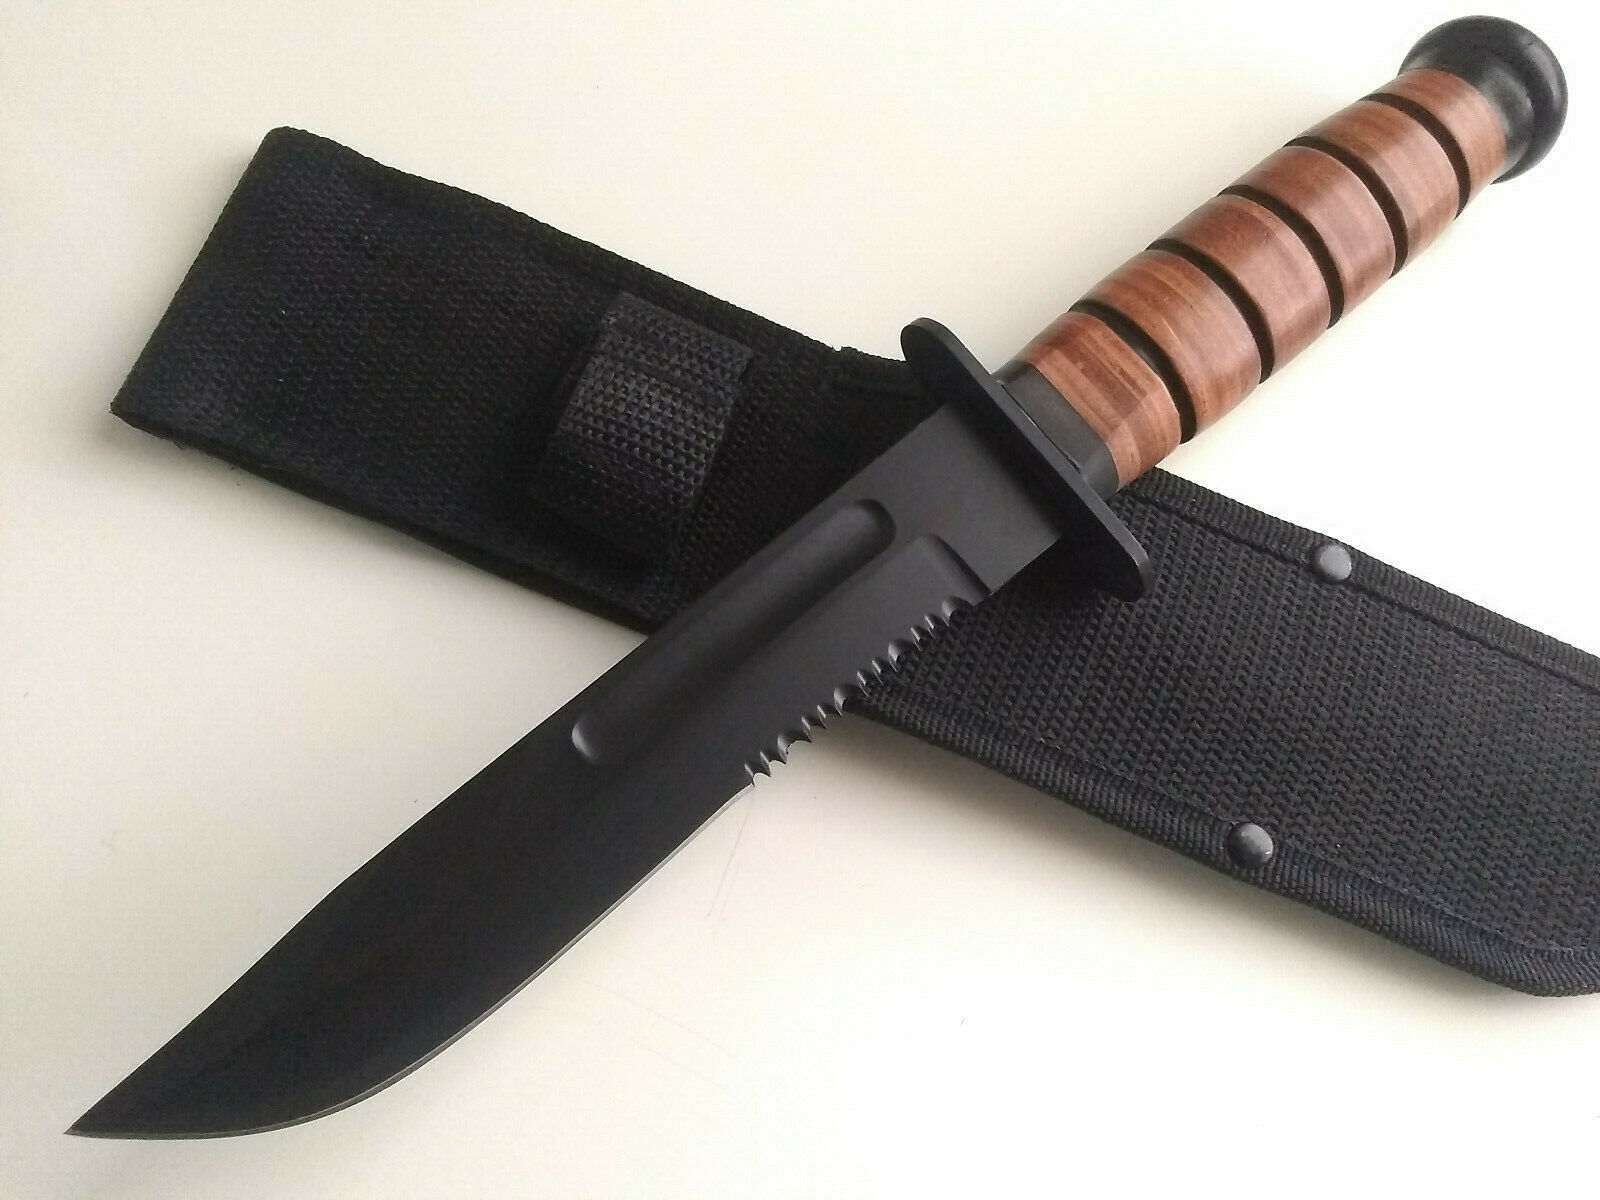 Big Bowie Black Fixed Blade Survival Hunting Knife with Leather Handle & Sheath EDC